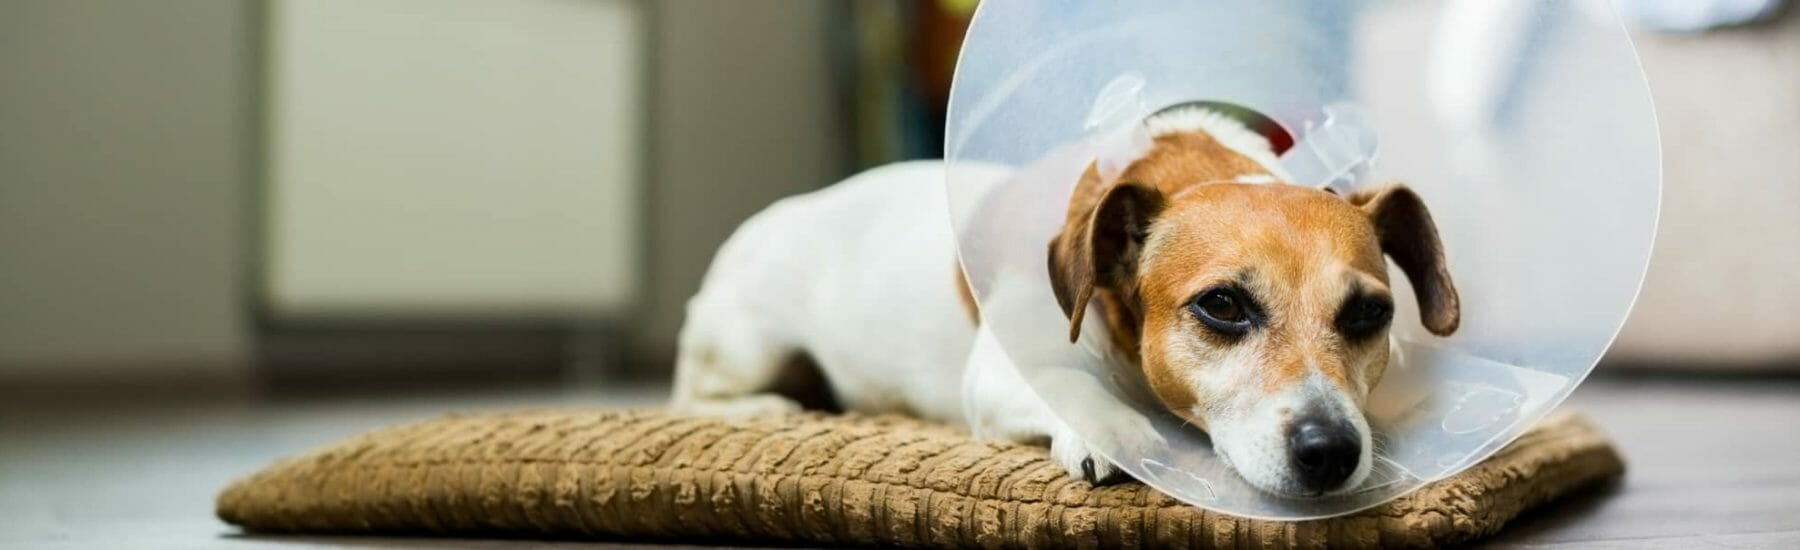 Orange and white dog laying on pillow with cone on head